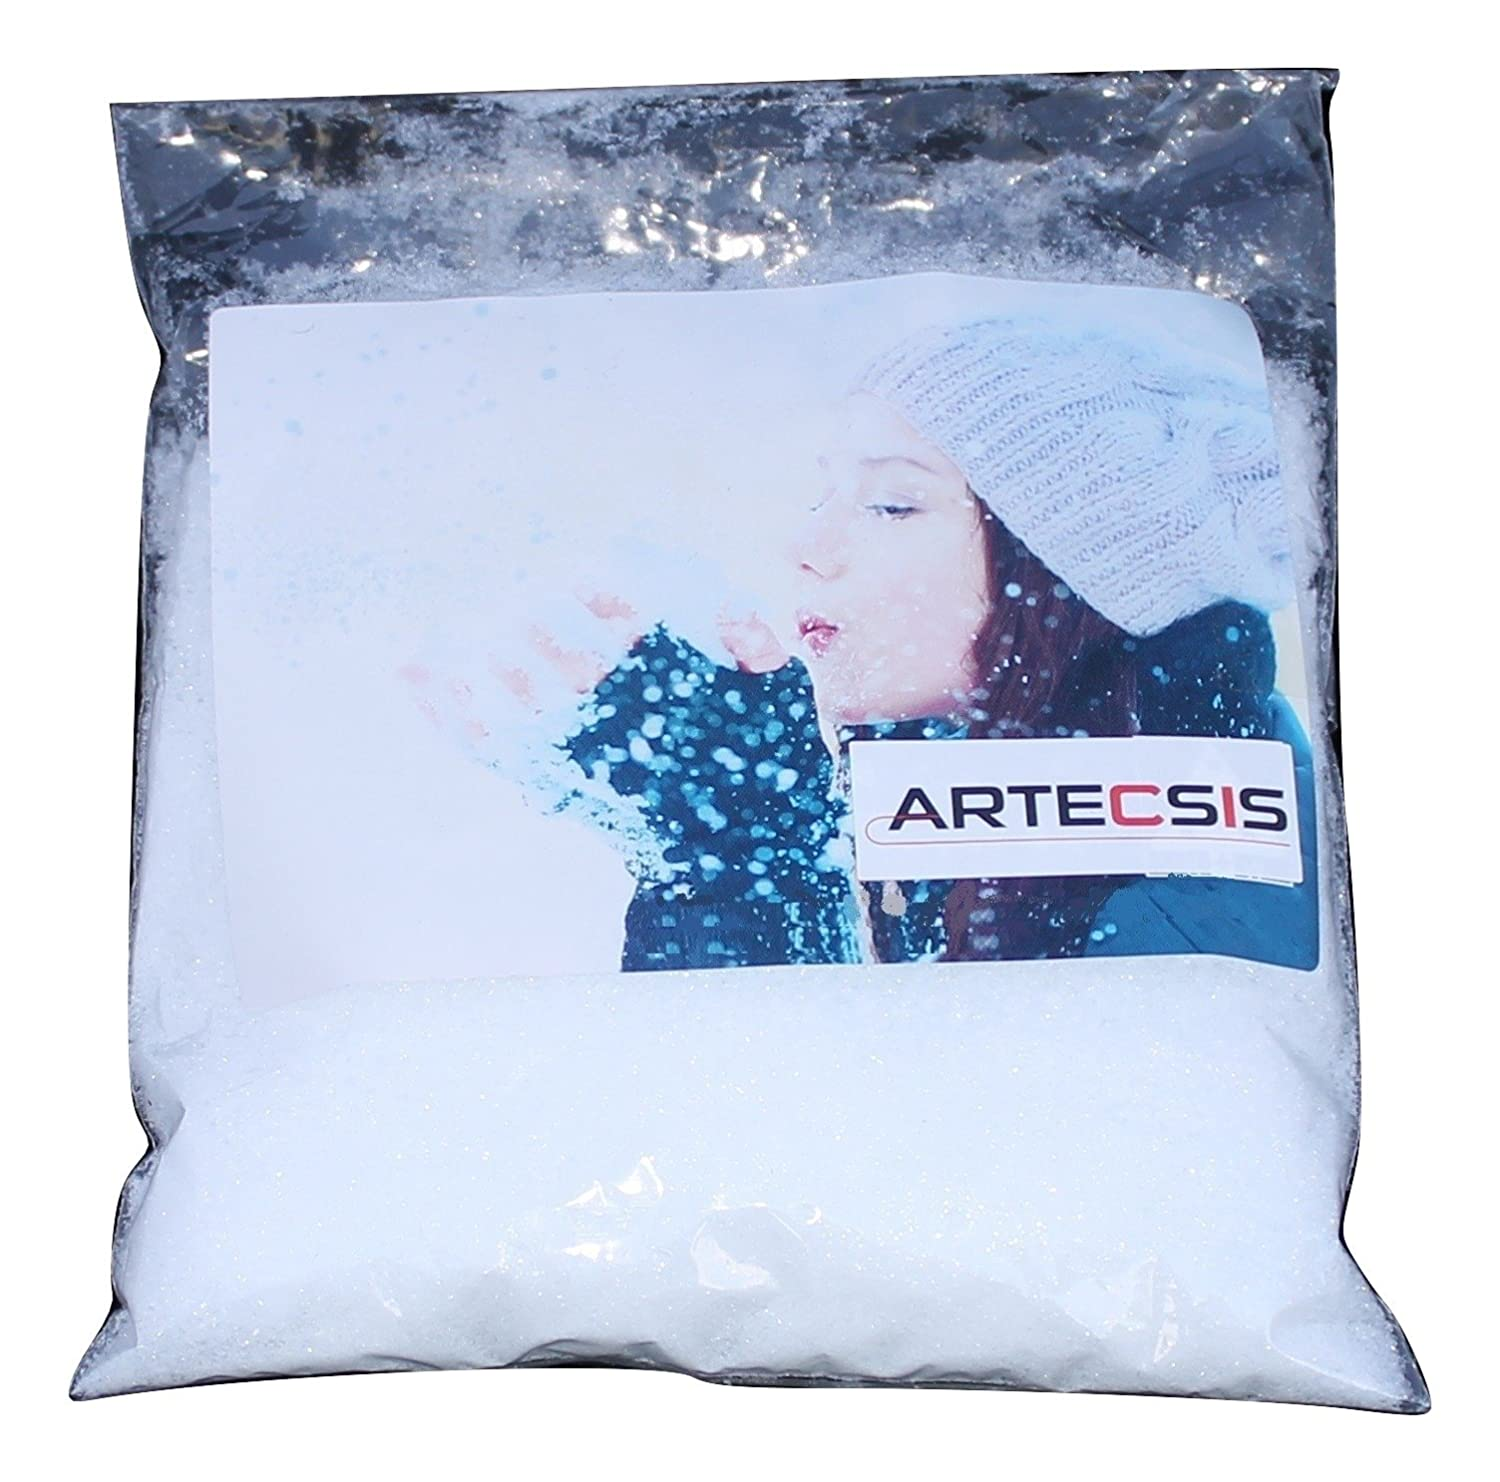 Artificial Snow Fake snow – 1 litre of realistic snow for Christmas or model building indoors and outdoors Artecsis